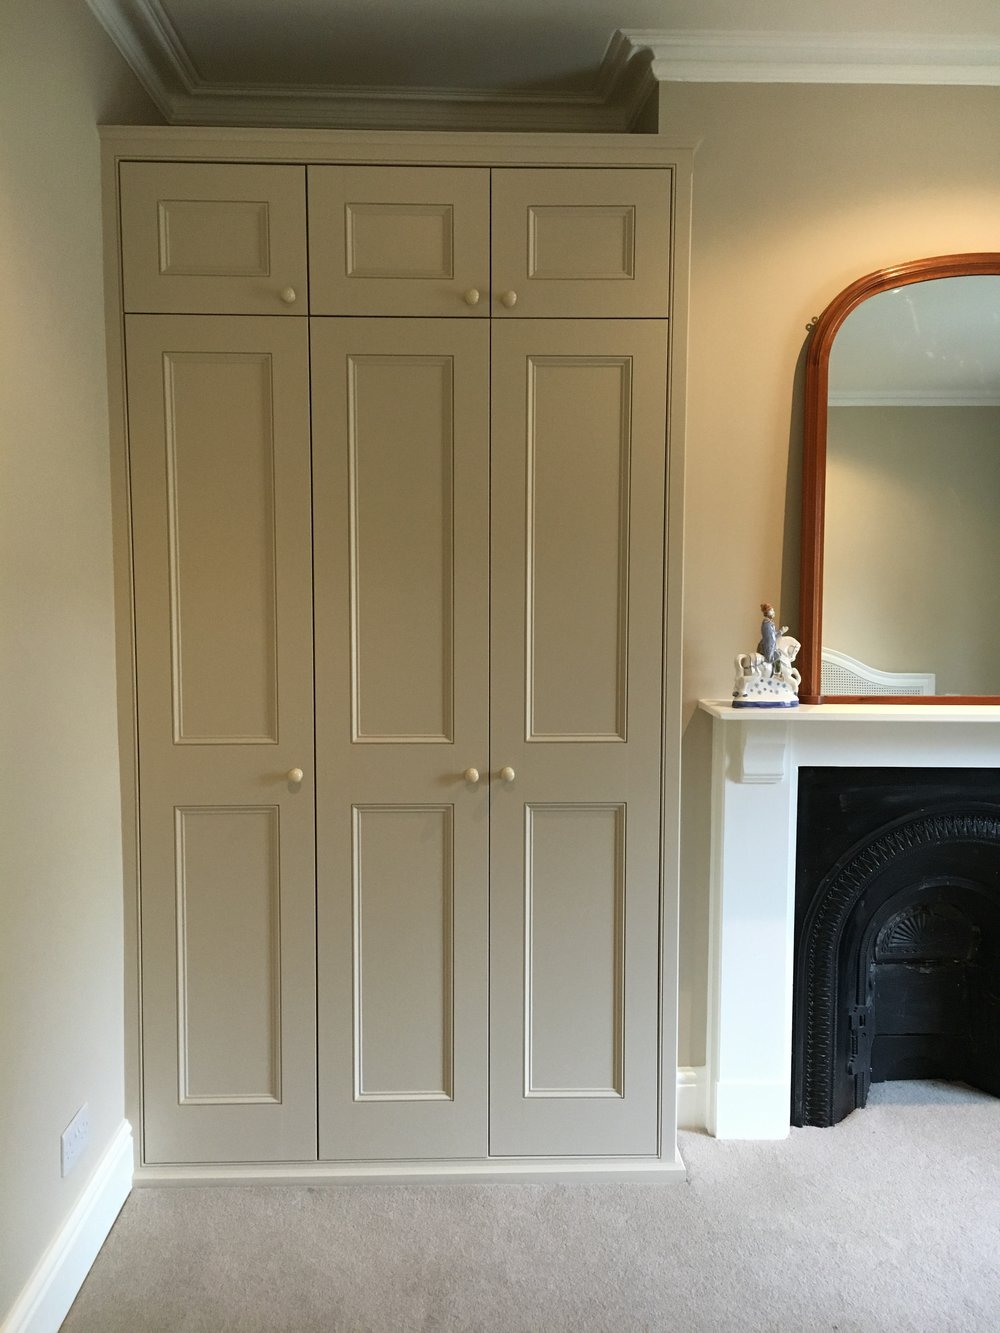 Panelled doors with smaller linen cupboard above.